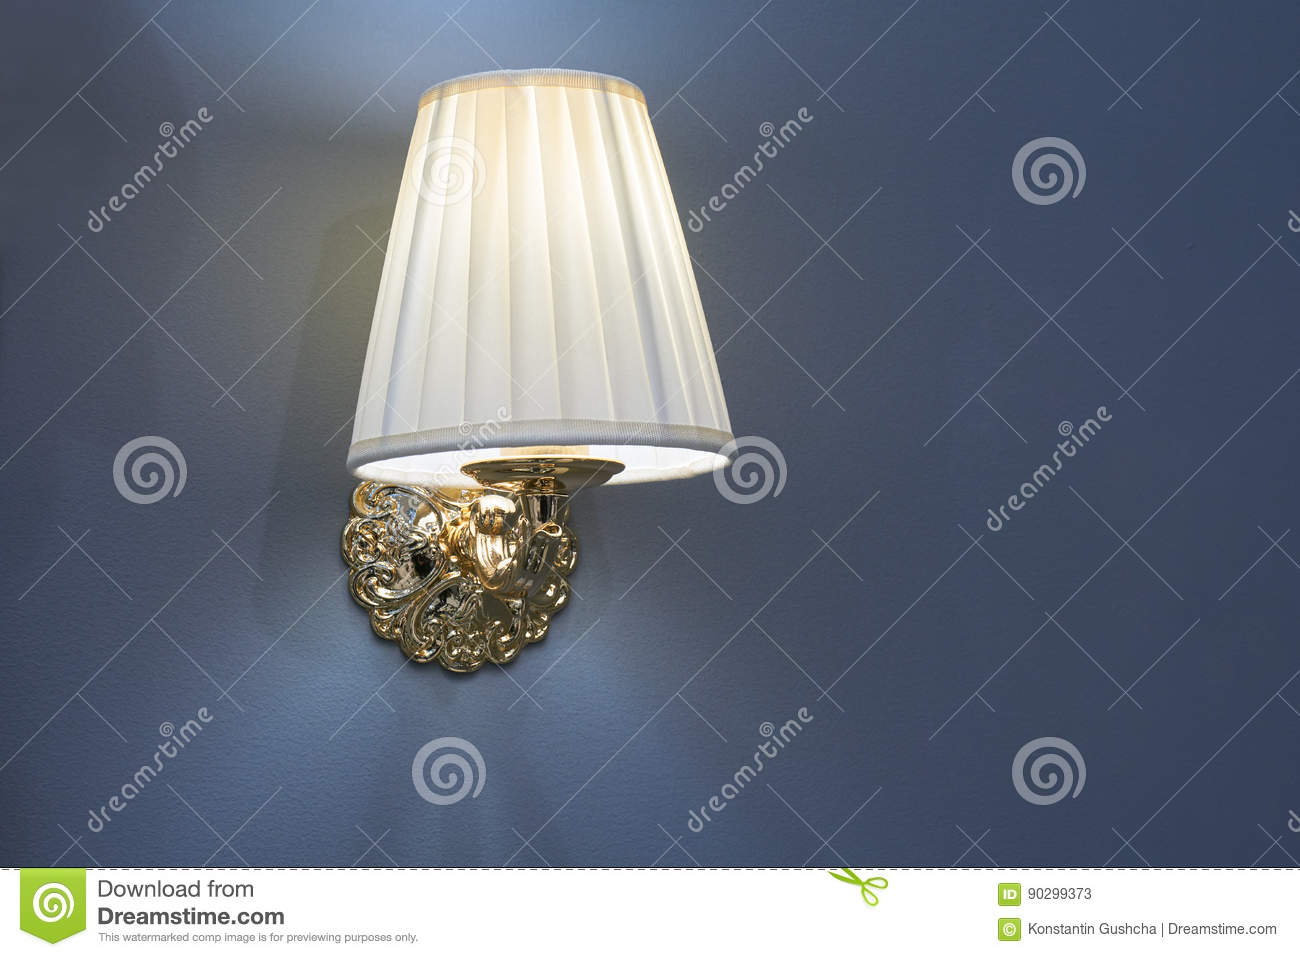 Lamp mounted on the wall